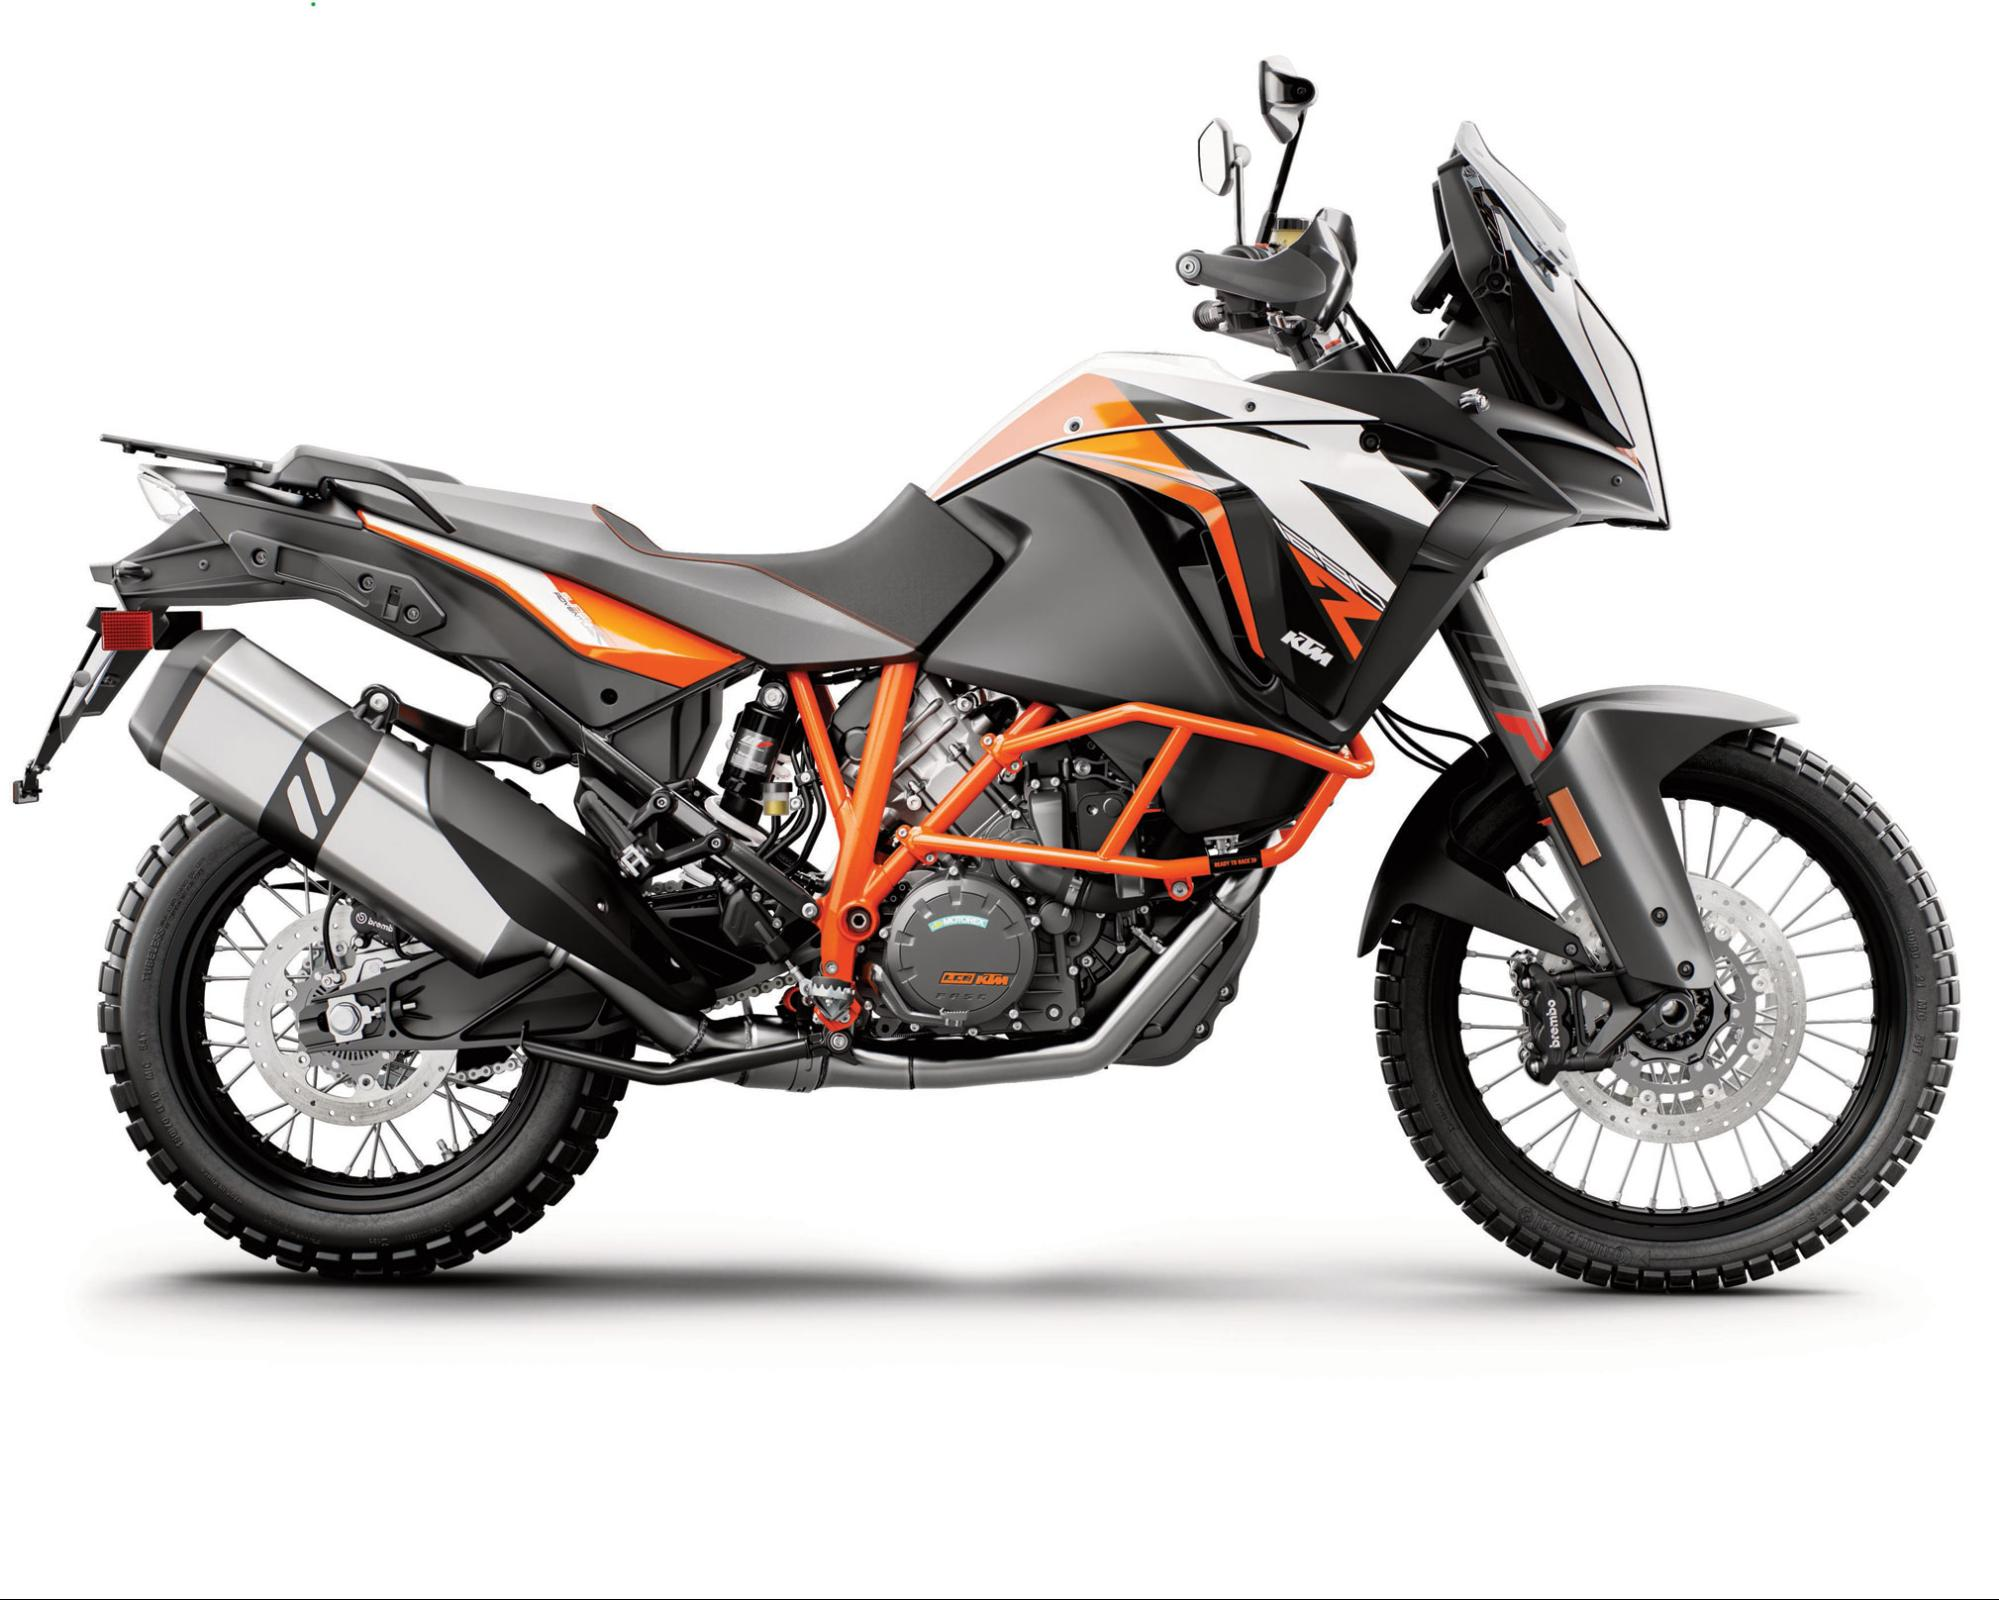 2020 Ktm Motorcycle Model List